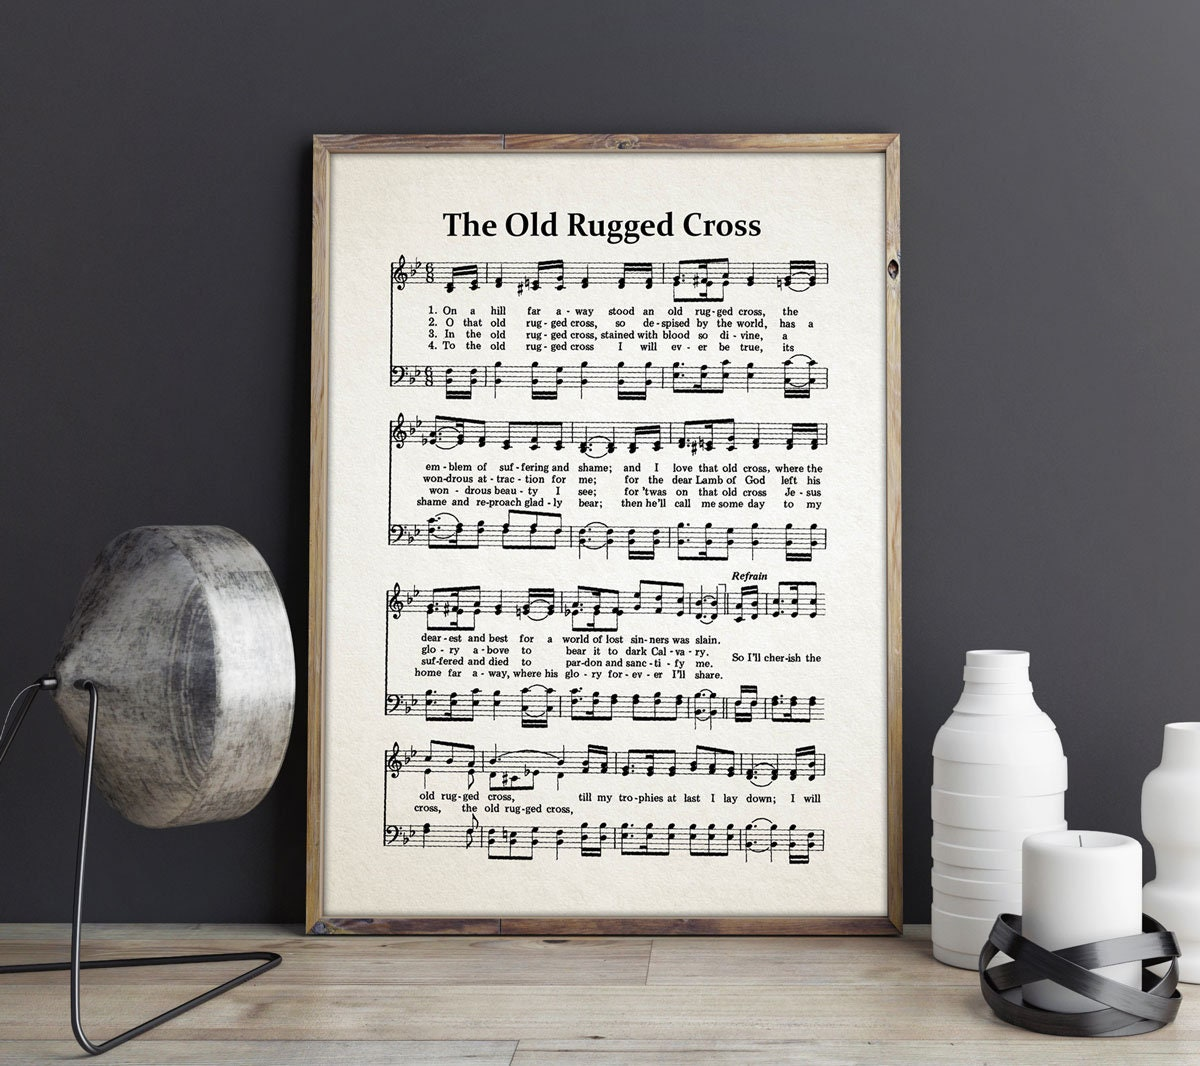 image regarding Old Rugged Cross Printable Sheet Music identified as The Outdated Rugged Cross Hymn Print Aged Rugged Cross Poster